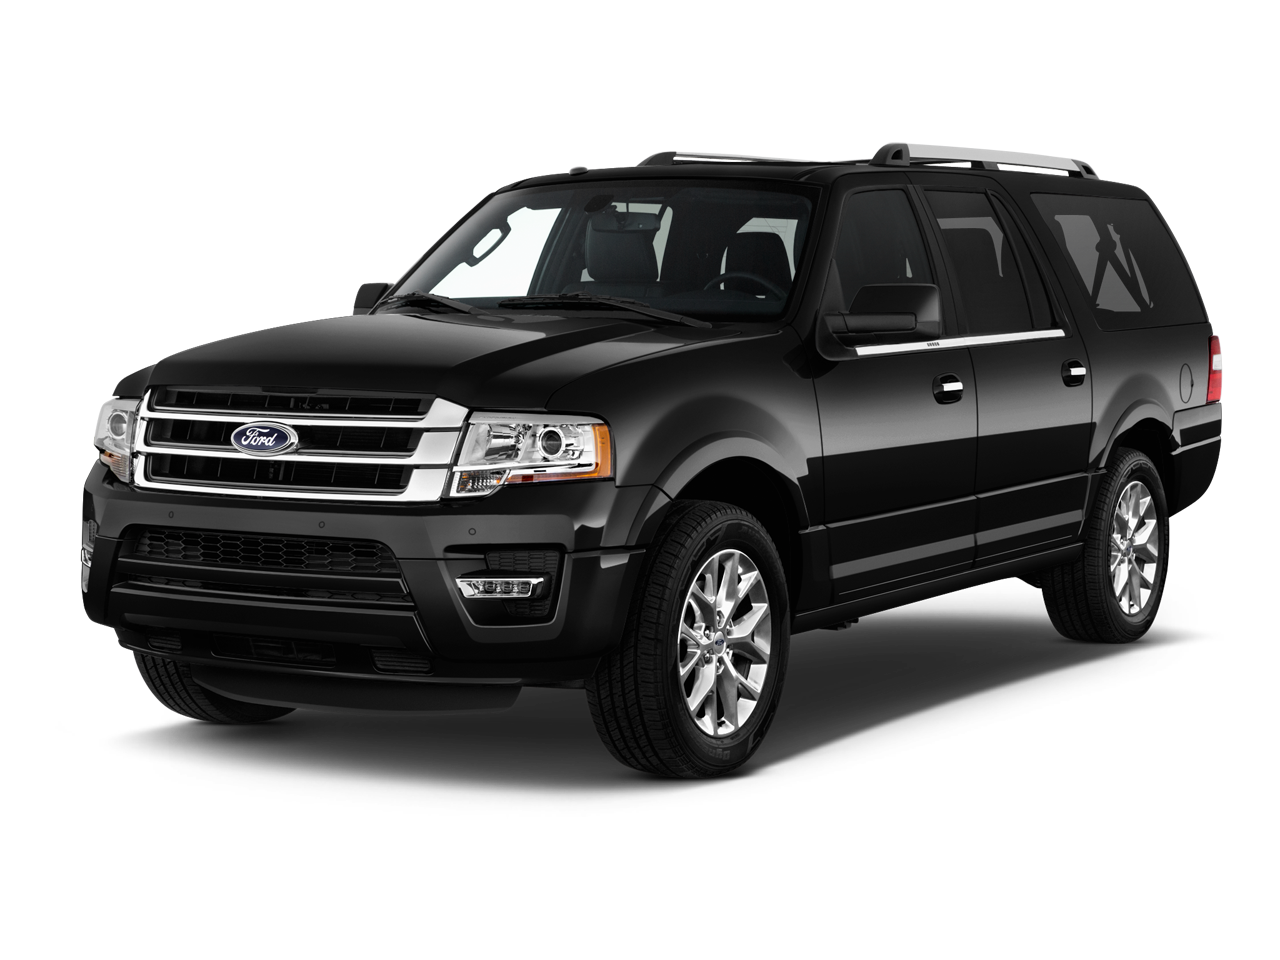 new 2017 ford expedition platinum near tulsa ok bob hurley ford. Black Bedroom Furniture Sets. Home Design Ideas